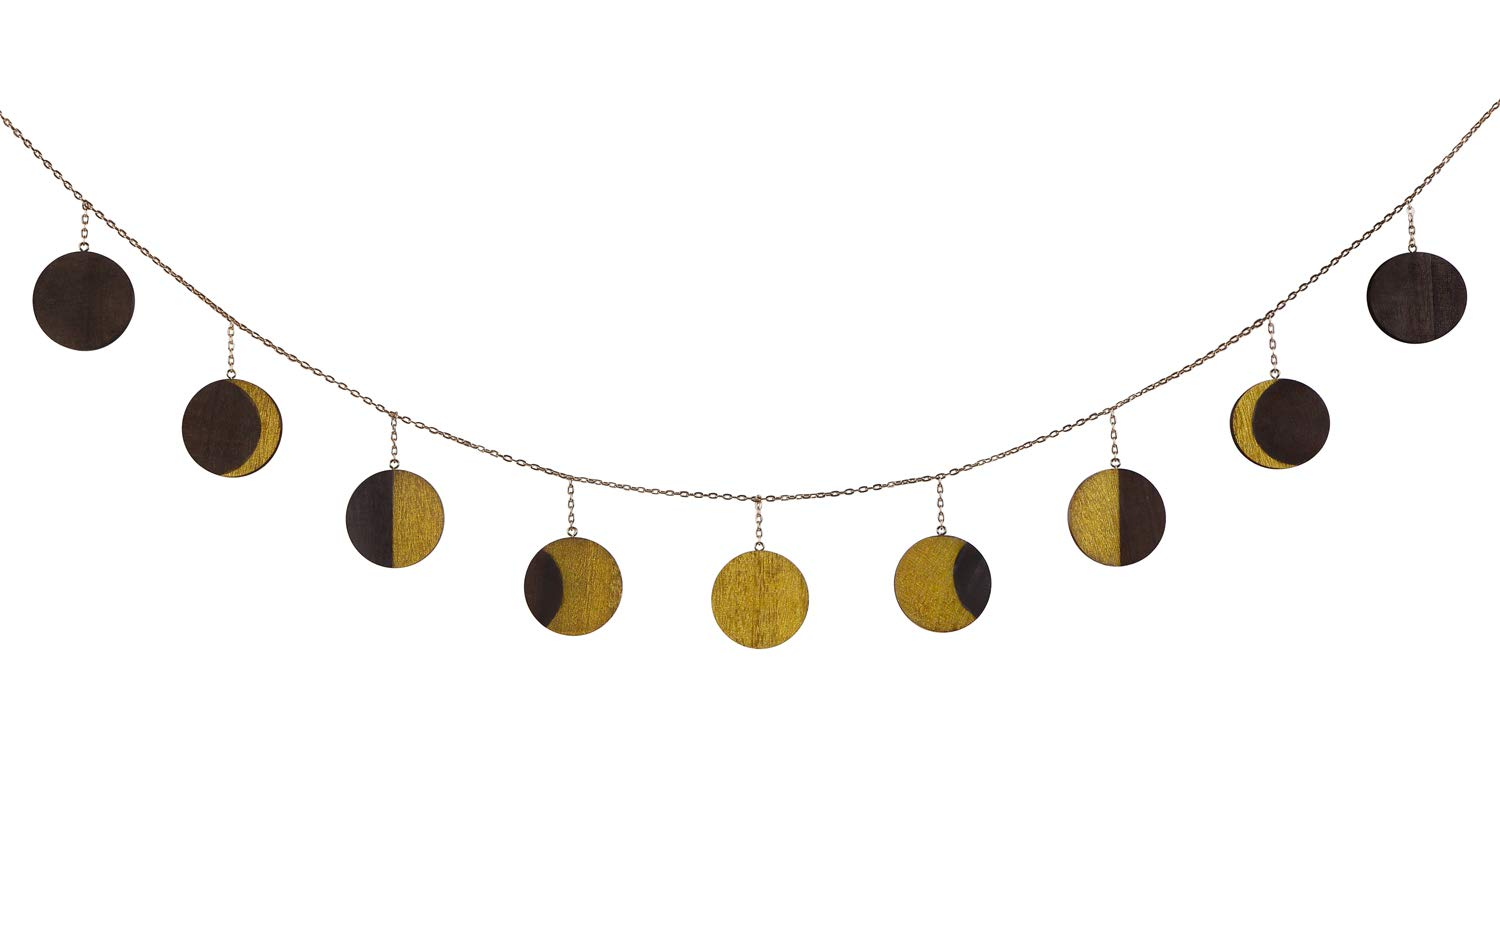 Mkono Moon Phase Garland with Chains Celestial Wall Phases,Boho Chic Bohemian Wall Decor - Apartment Dorm Office Nursery Living Room Bedroom Decorative Wall Art,Gold